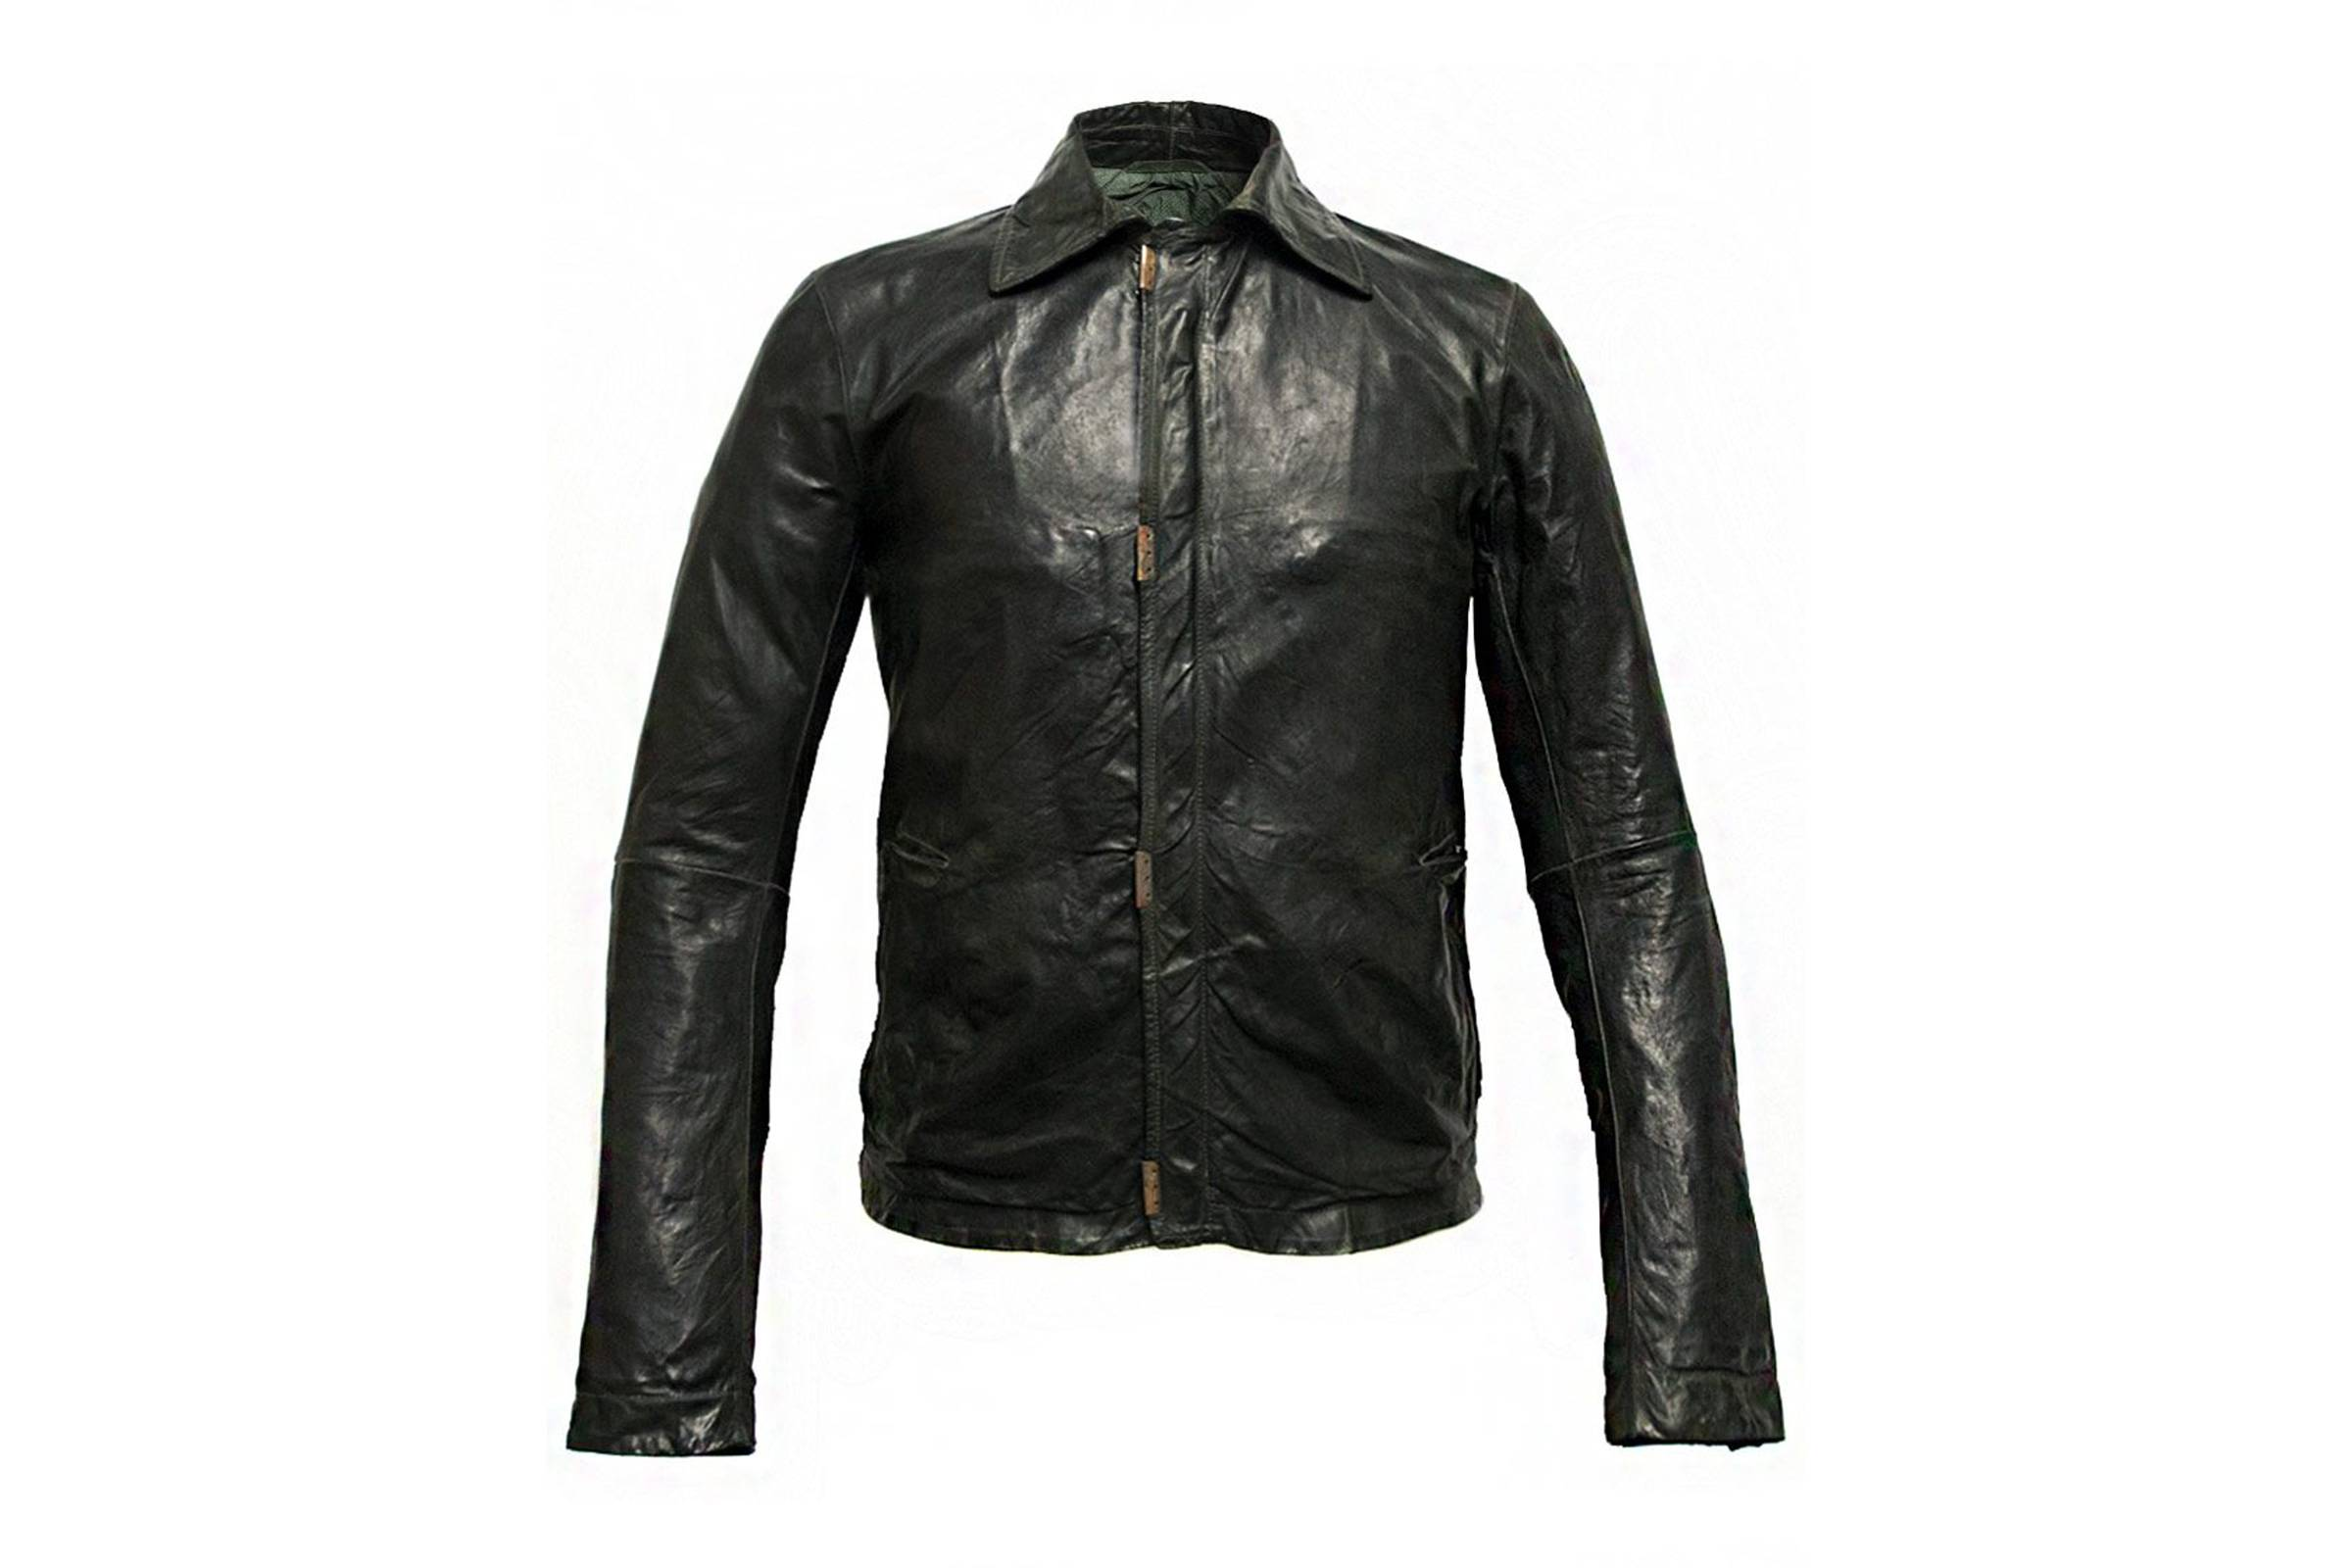 Carol Christian Poell LM/2498 CORS-10 Scarstitch Leather Jacket